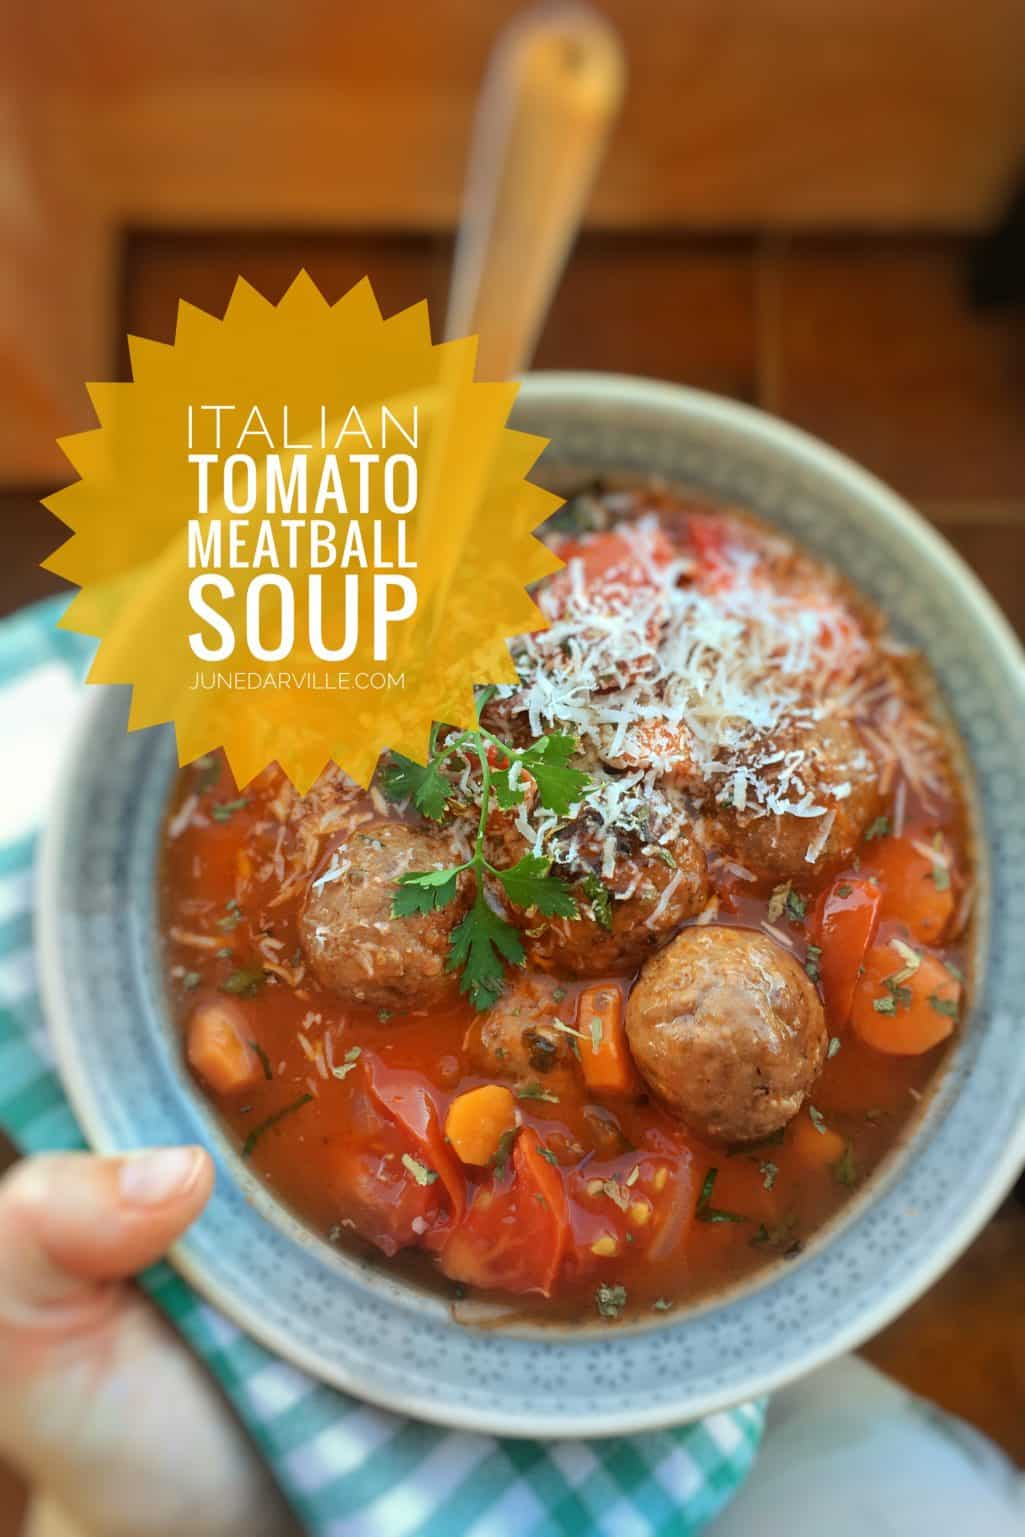 Italian Tomato Meatball Soup Recipe